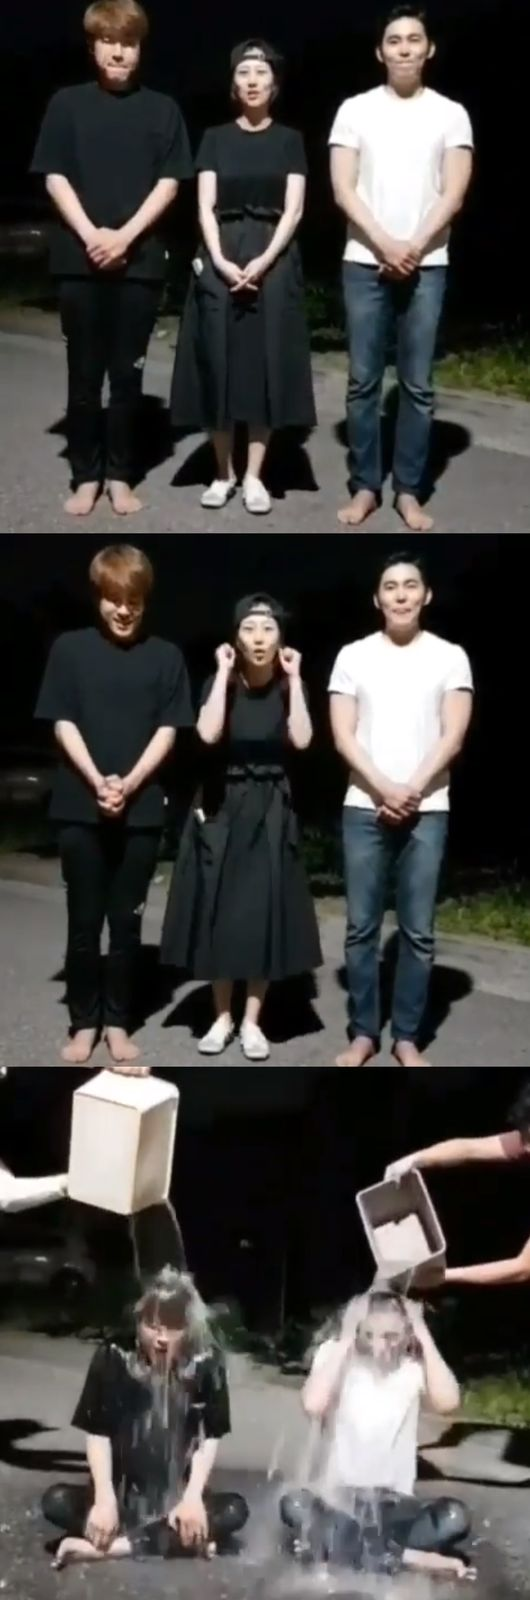 <p>Enka singer Jang Yun-jeong supported the junior who participated in the Ice bucket challenge.</p><p>14th Jang Yun-jeong, her husband, KBS announcer Tae Kyung Wan posted a video of a rookie Enka group tree that I appointed to my SNS participated in the Ice bucket challenge.</p><p>Prior to leaving 13th, Tae Kyung Wan told SNS, Hi, Im KBS announcer Tae Kyung Wan.It became together with Ice bucket challenge with musical actor Kim So Hyeon and KBS Nobody Weather Caster recommendation. I am honored to be together for one day and pray for the power of every Fango in the world to everyone, YTN Ryu Juhyon Anchor and English instructor Reina said, A rookie Enka Group Tree Jang Yun-jeong loves I nominated three people.</p><p>Tae Kyung Wans wife Jang Yun-jeong also appeared in the video released on the 14th. Jang Yun-jeong said, Tae Kyung Wan announcer tried to name me, I am 16 and pregnant then I will definitely join and I will give opportunities to my juniors, Tae Kyung Wan this tree The reasons were mentioned.</p><p>Jang Yun-jeong, Tae Kyung Wan The couple are telling the second 16 and Pregnant news of May. The two married in the past 2013. Since then, I got the first son Makoto Case group and told me the second news for the first time in 4 years after boys birth. [Photo] Tae Kyung Wan SNS</p><p>Tae Kyung Wan SNS</p>